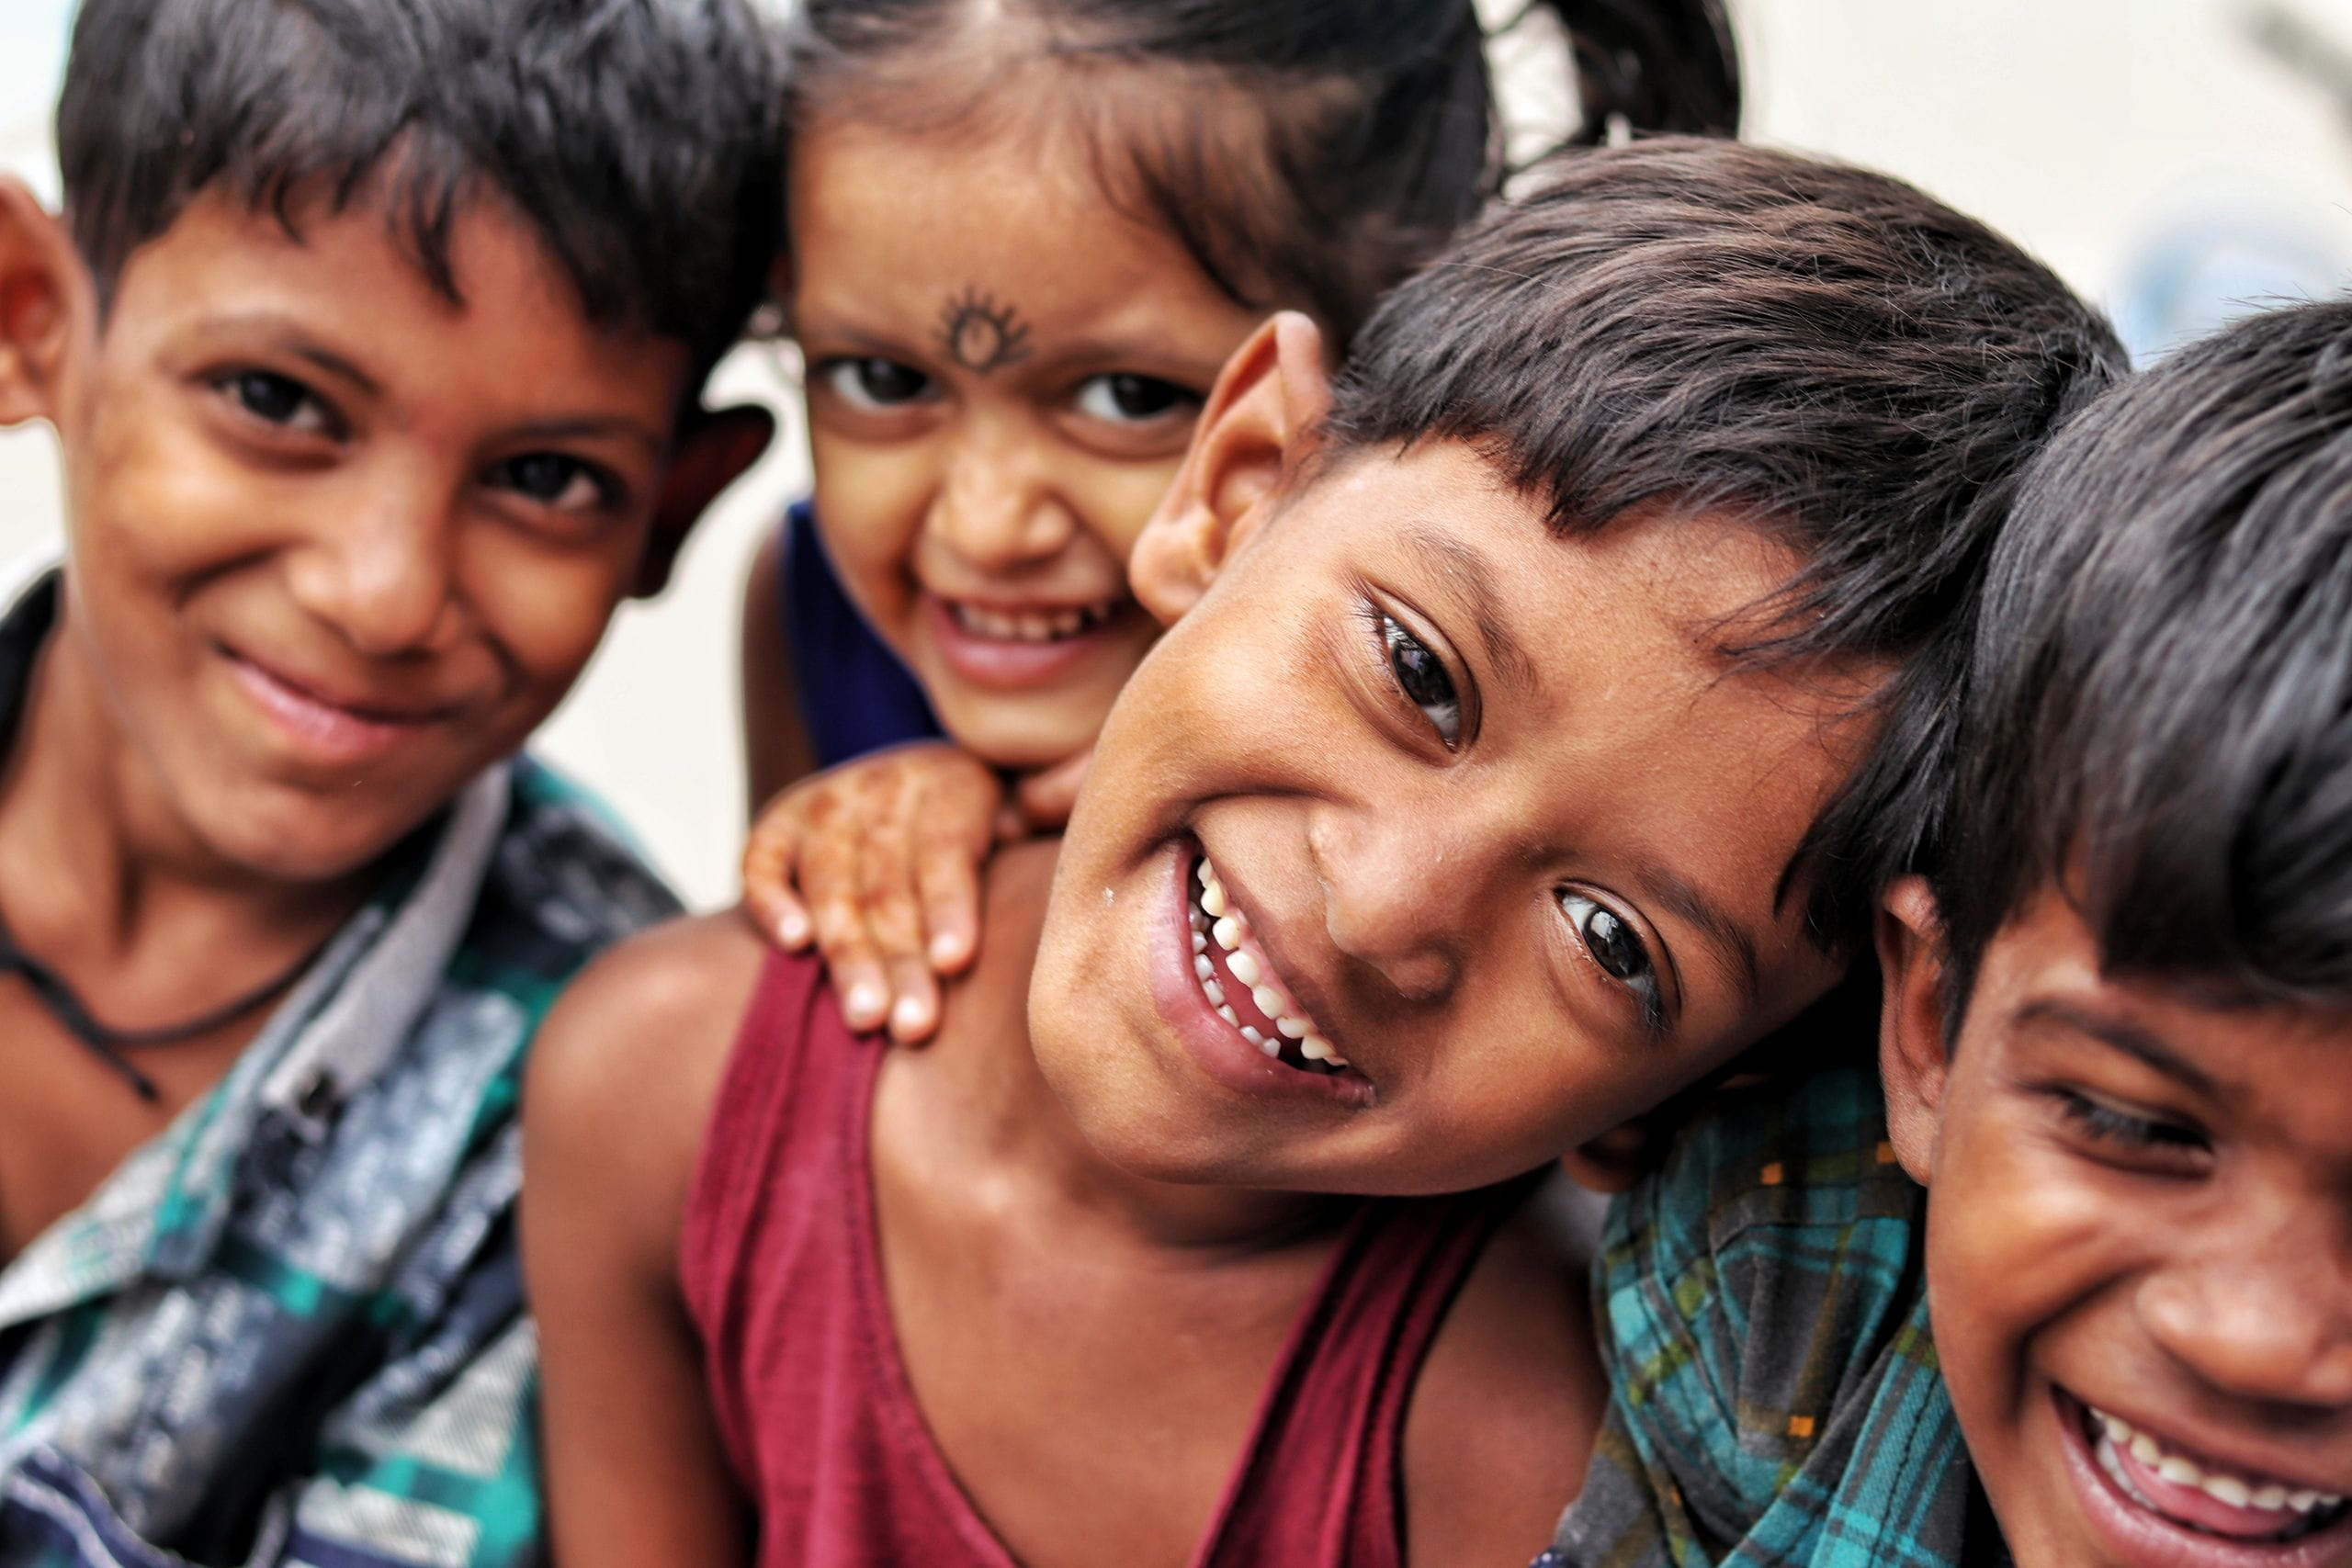 photo of a group of smiling children